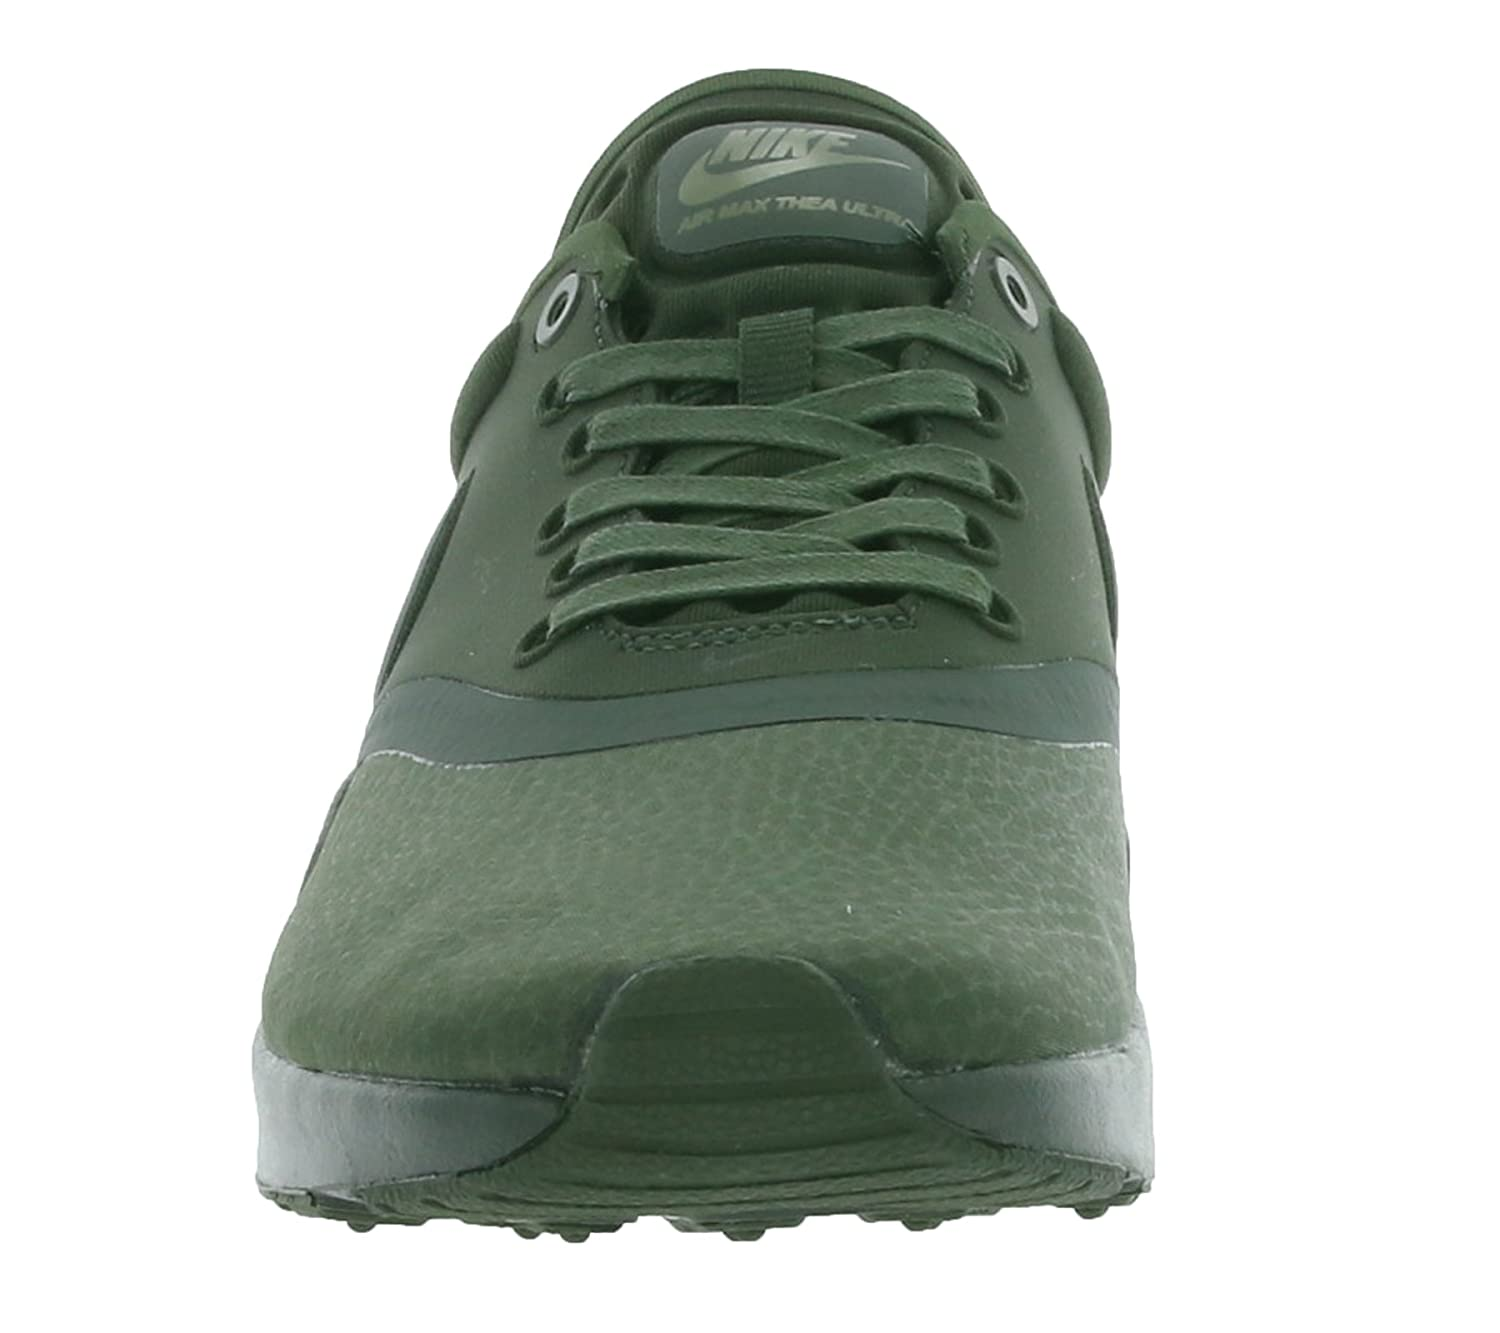 cheap for discount c8660 ad6aa Amazon.com   NIKE WMNS Air Max Thea Ultra Premium Lifestyle Sneakers Women  Sequoia Sequoia-Medium Olive New 848279-301 - 6   Fashion Sneakers